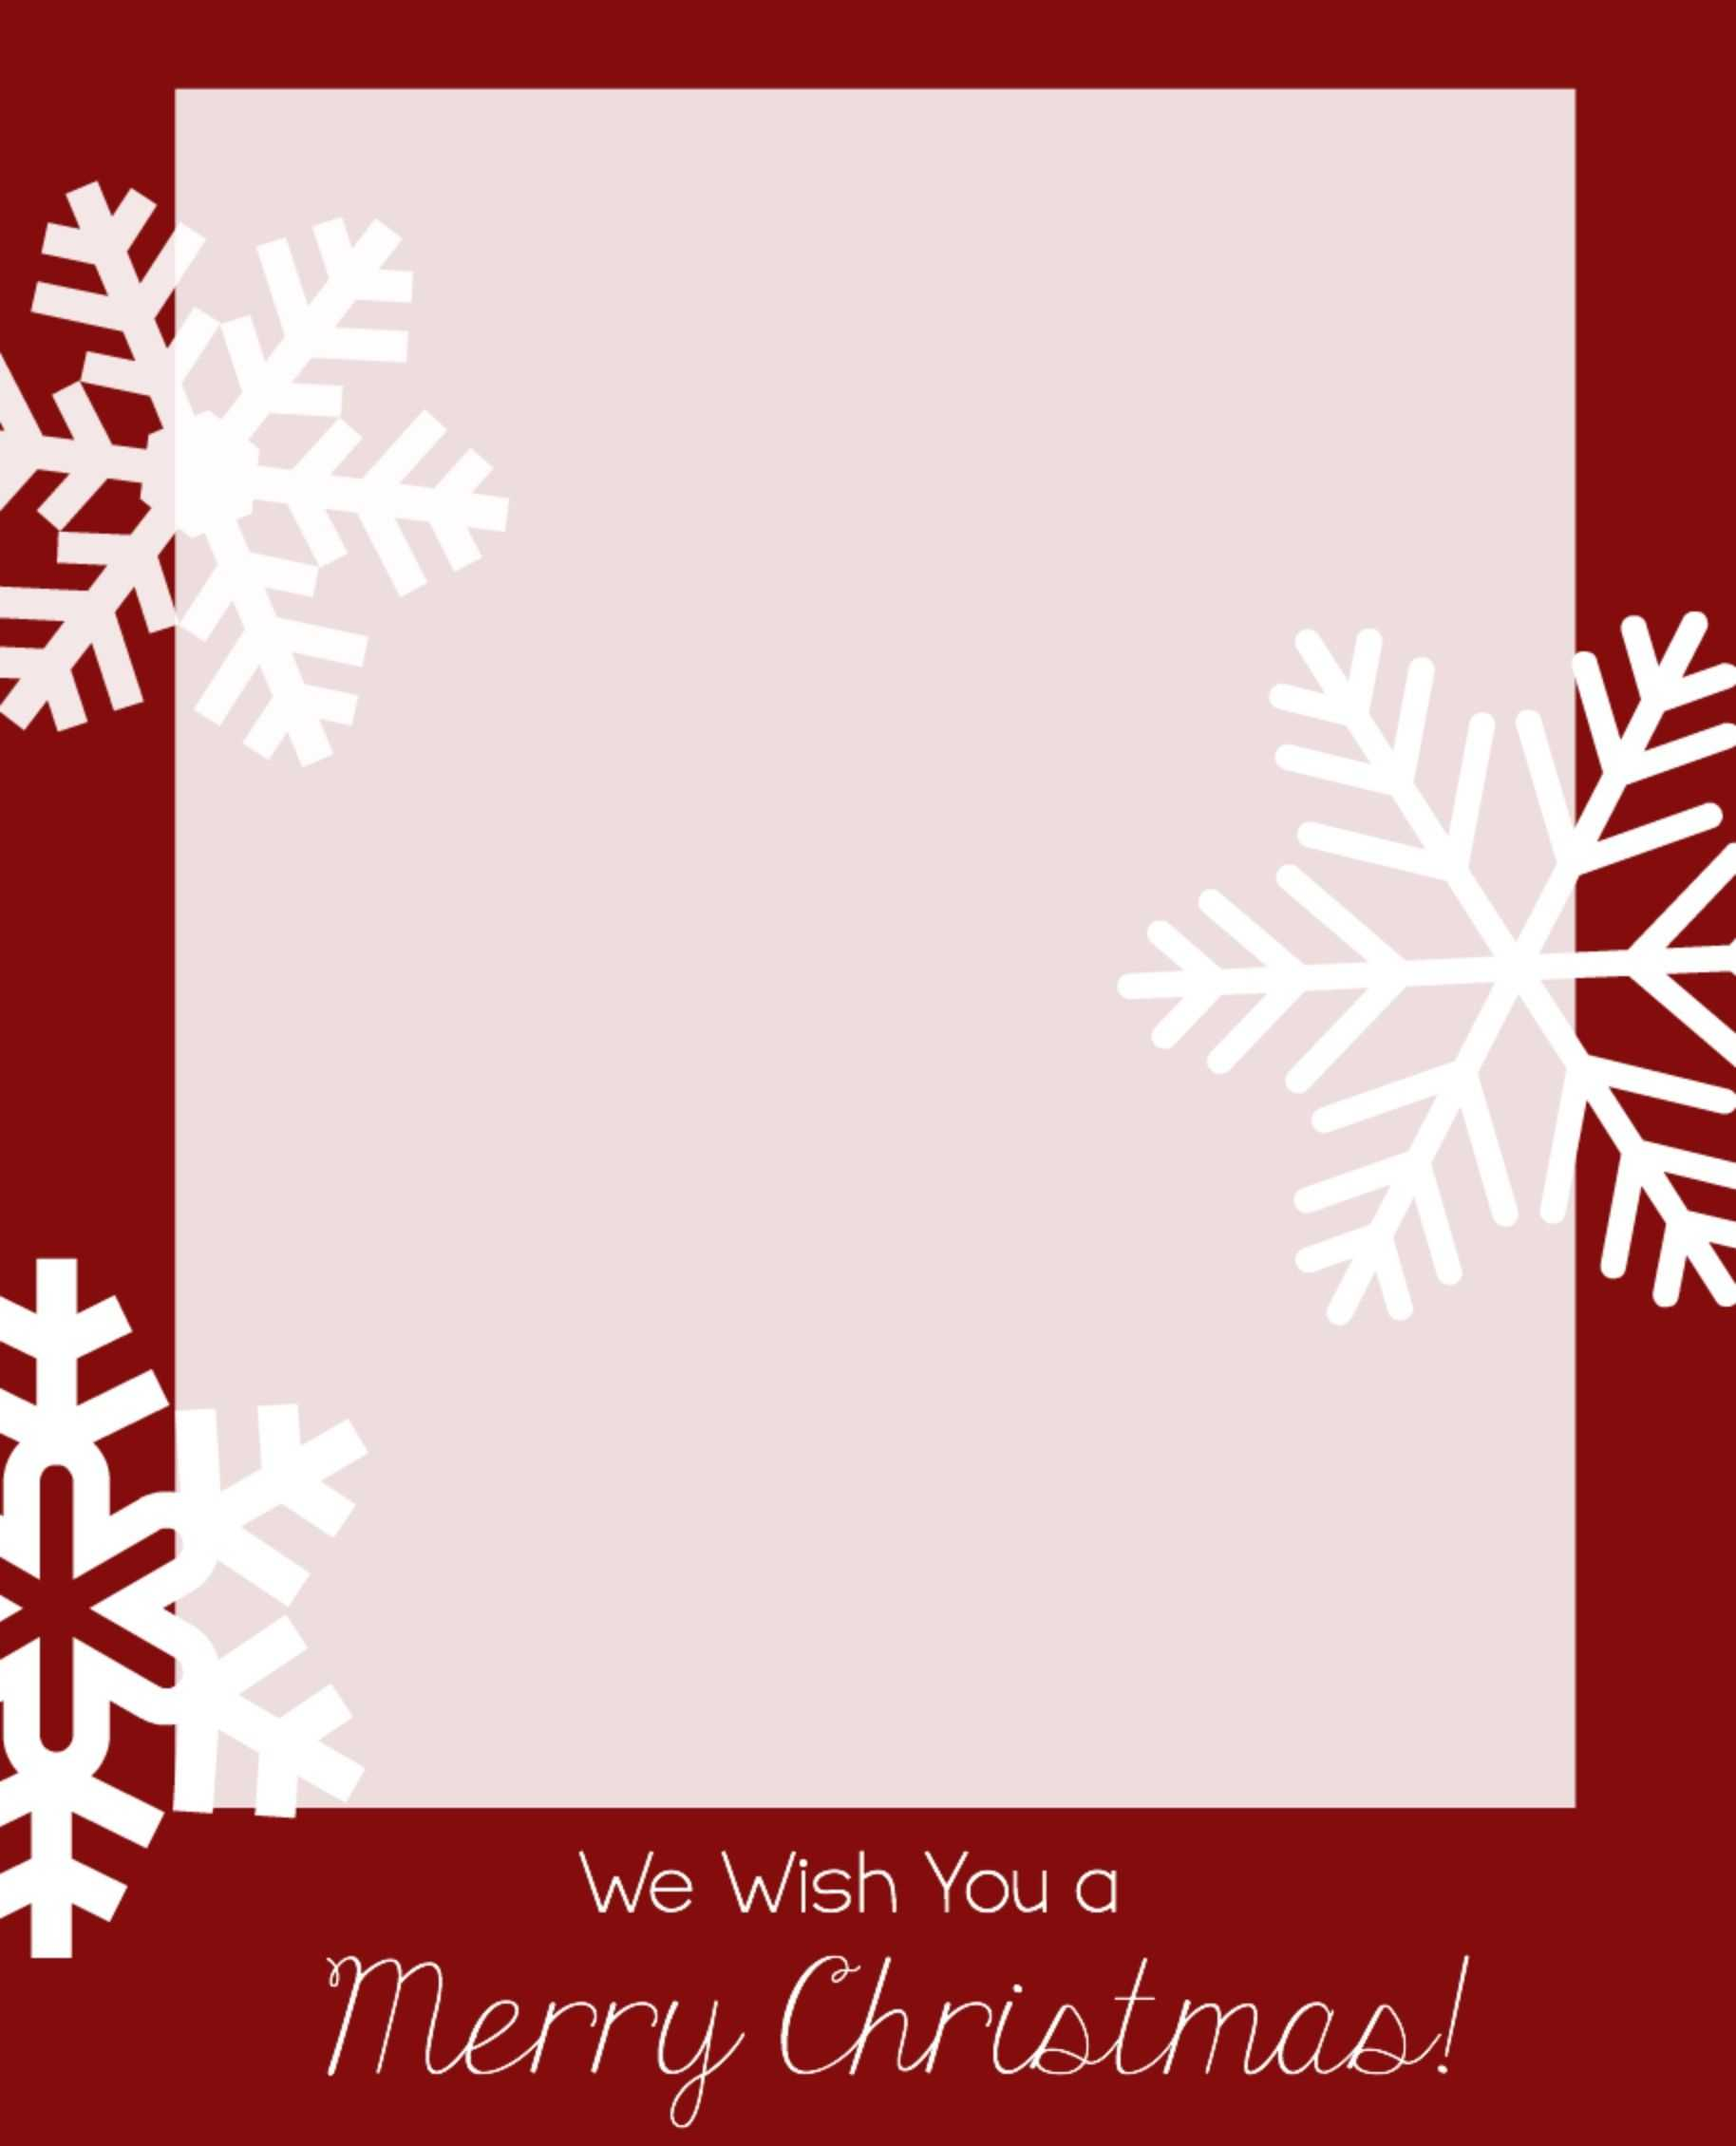 Free Christmas Card Templates | Christmas Card Template intended for Free Holiday Photo Card Templates